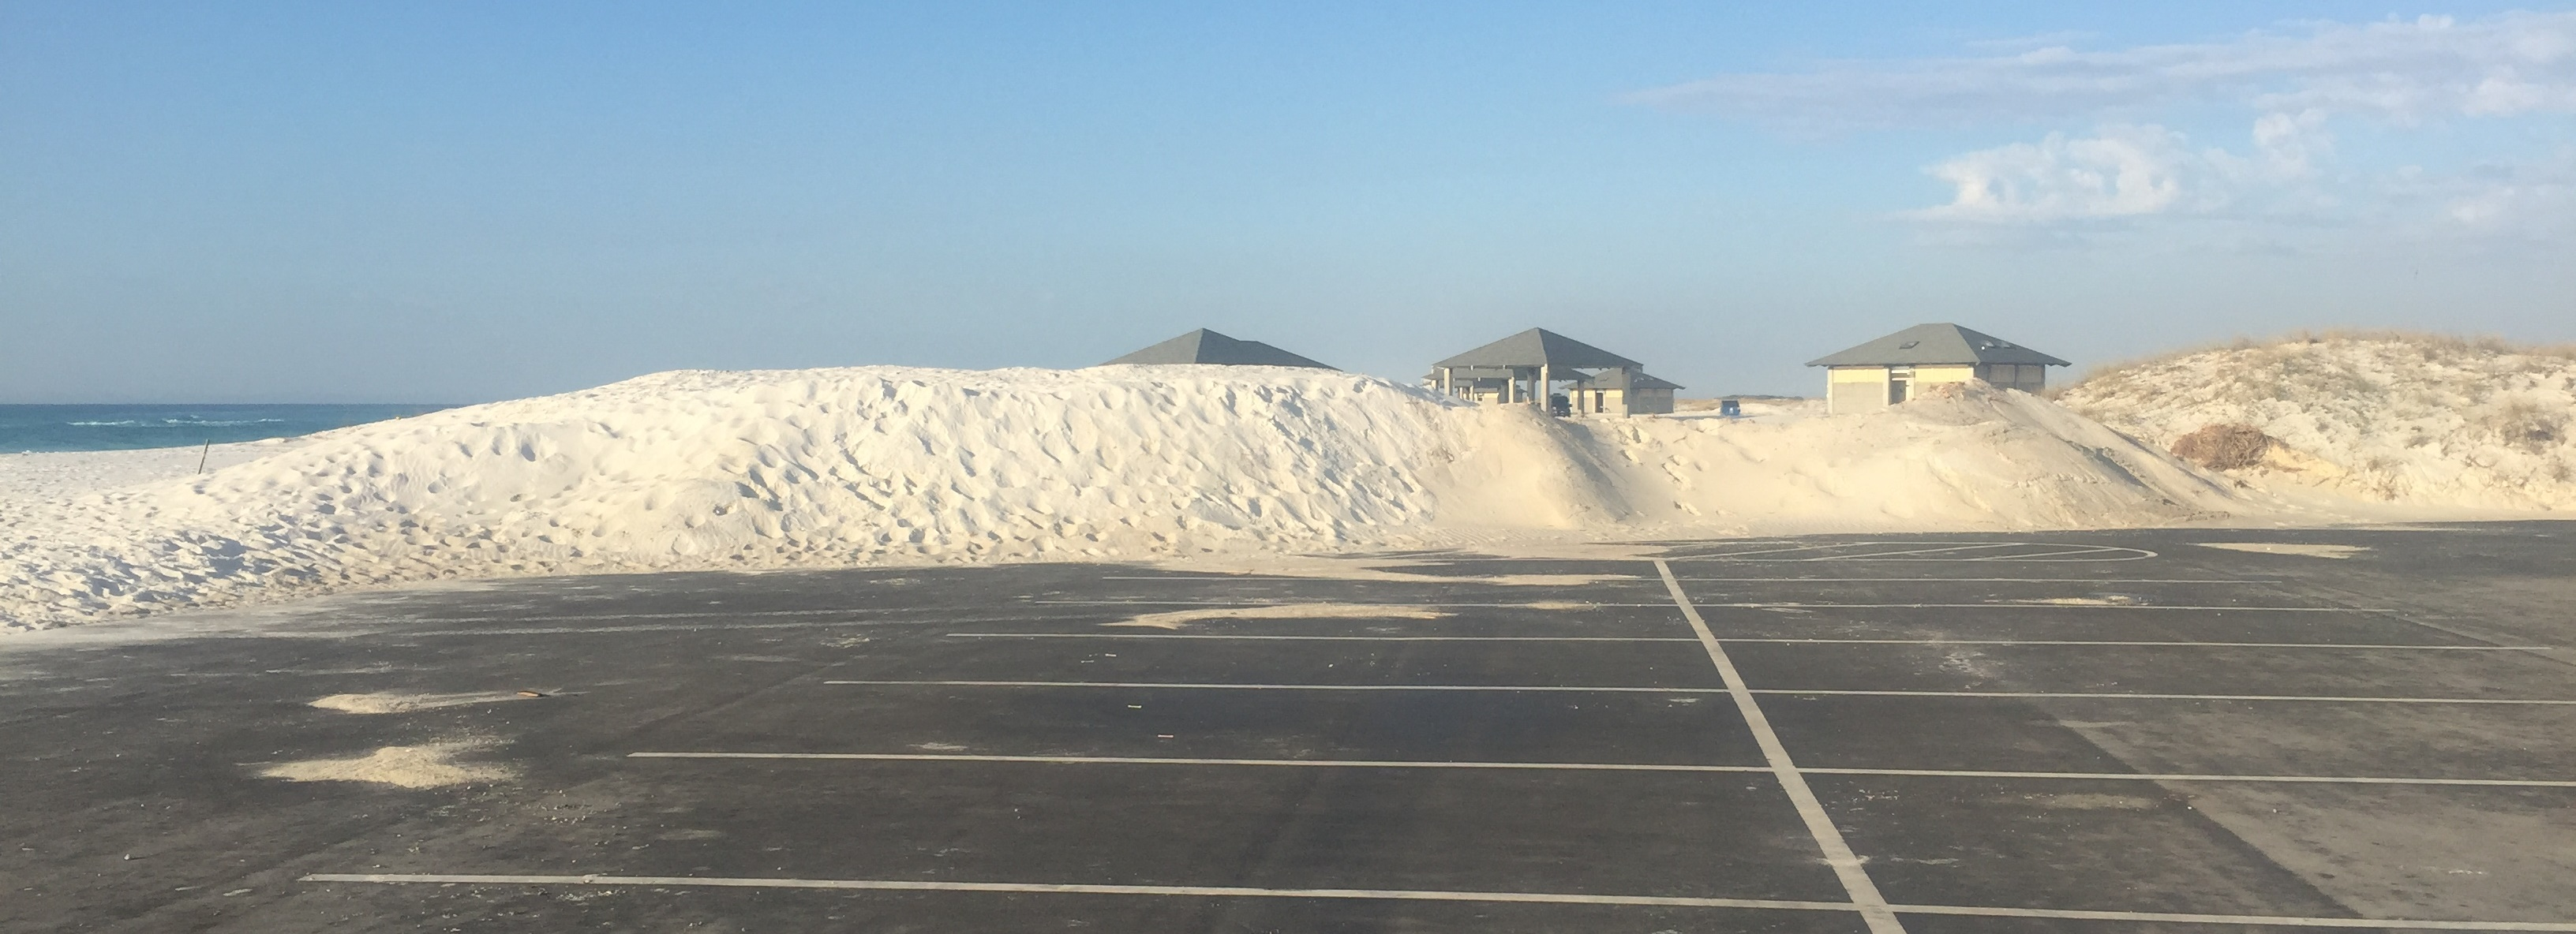 Mounds of white sand stand at the edge of a paved area. Pavilion roofs can be seen in the distance.